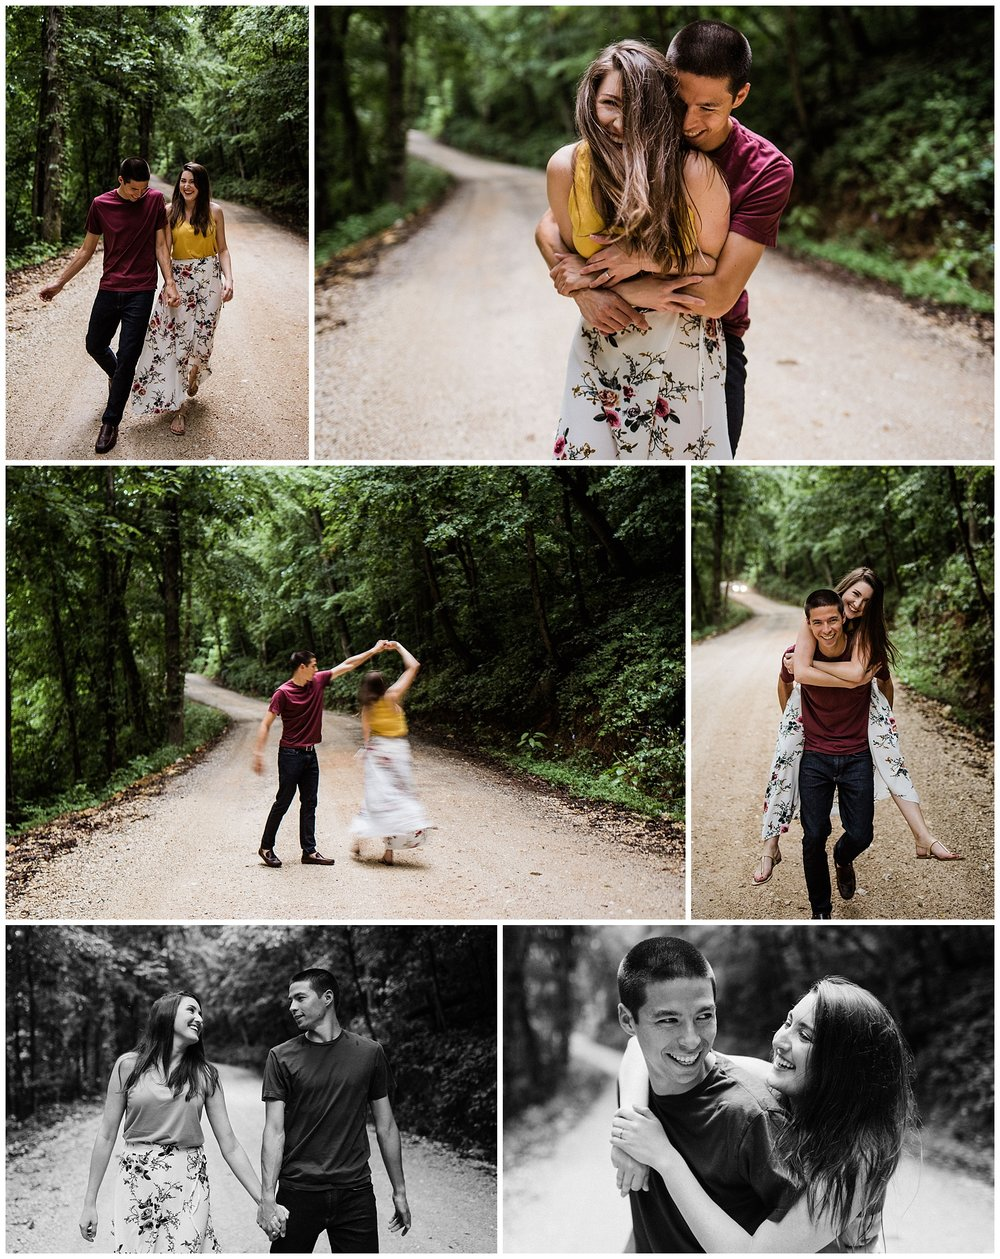 Misty Mountain Adventure Engagements by Tanner Burge 5